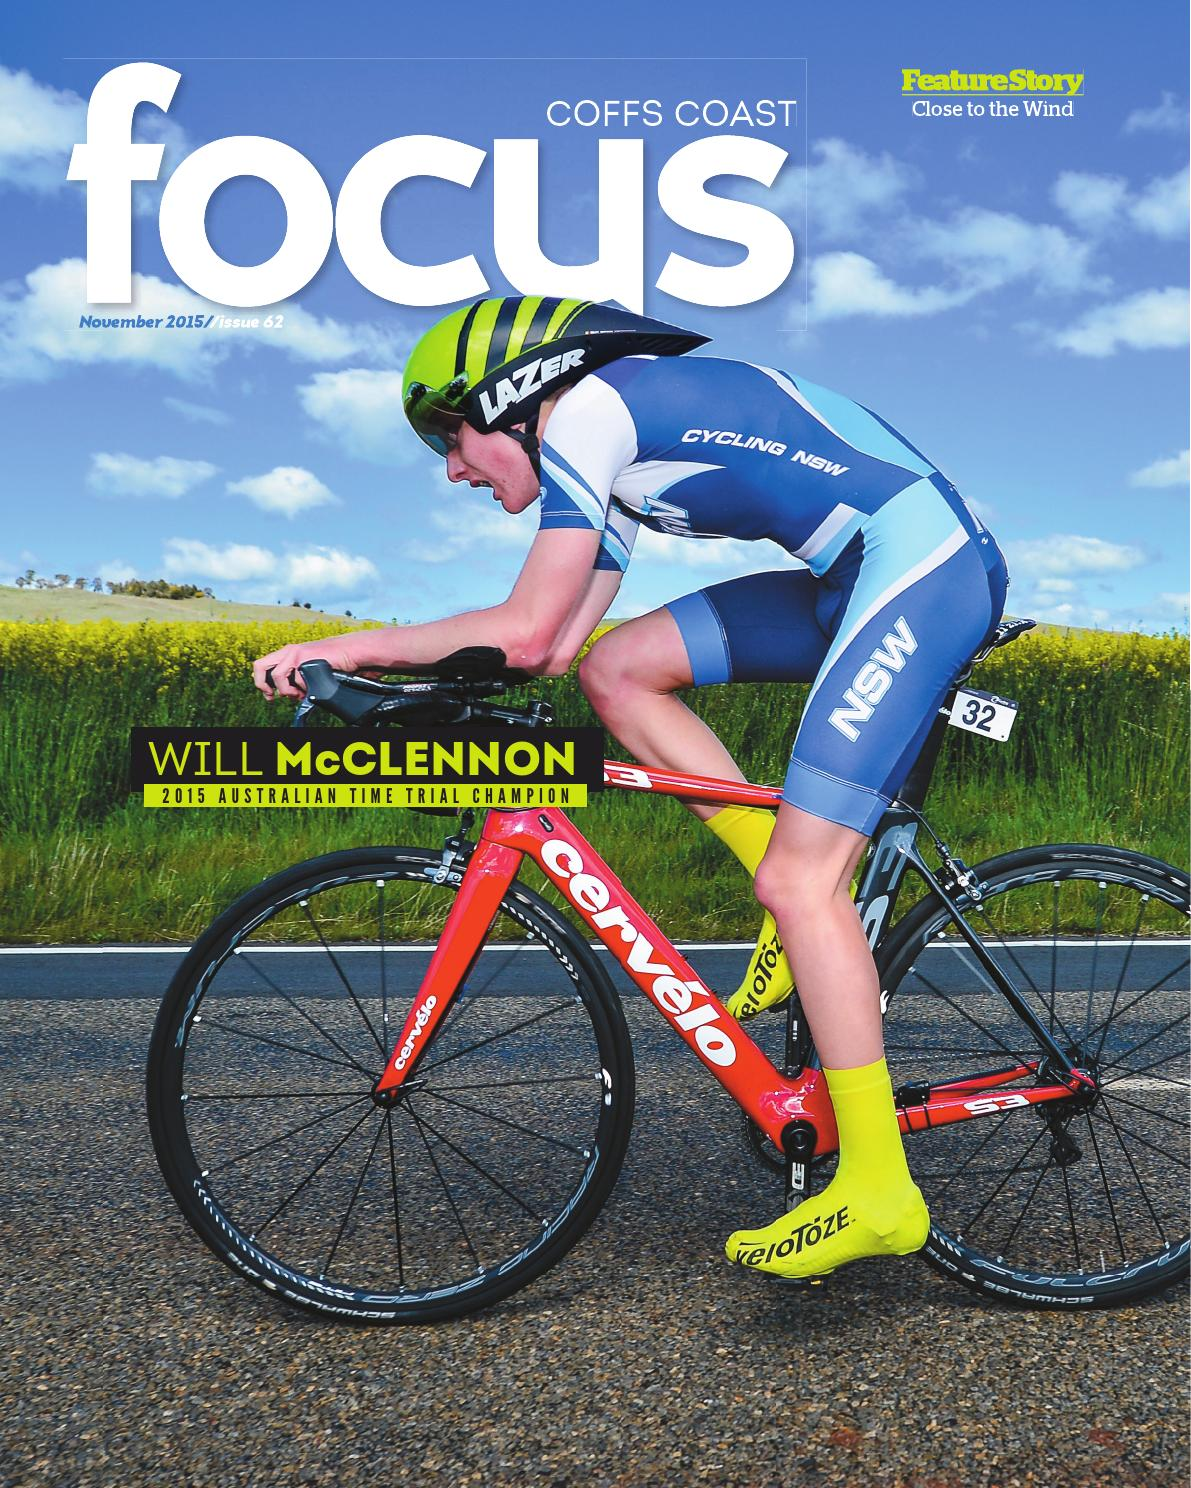 Coffs coast focus i62 by focus issuu nvjuhfo Image collections